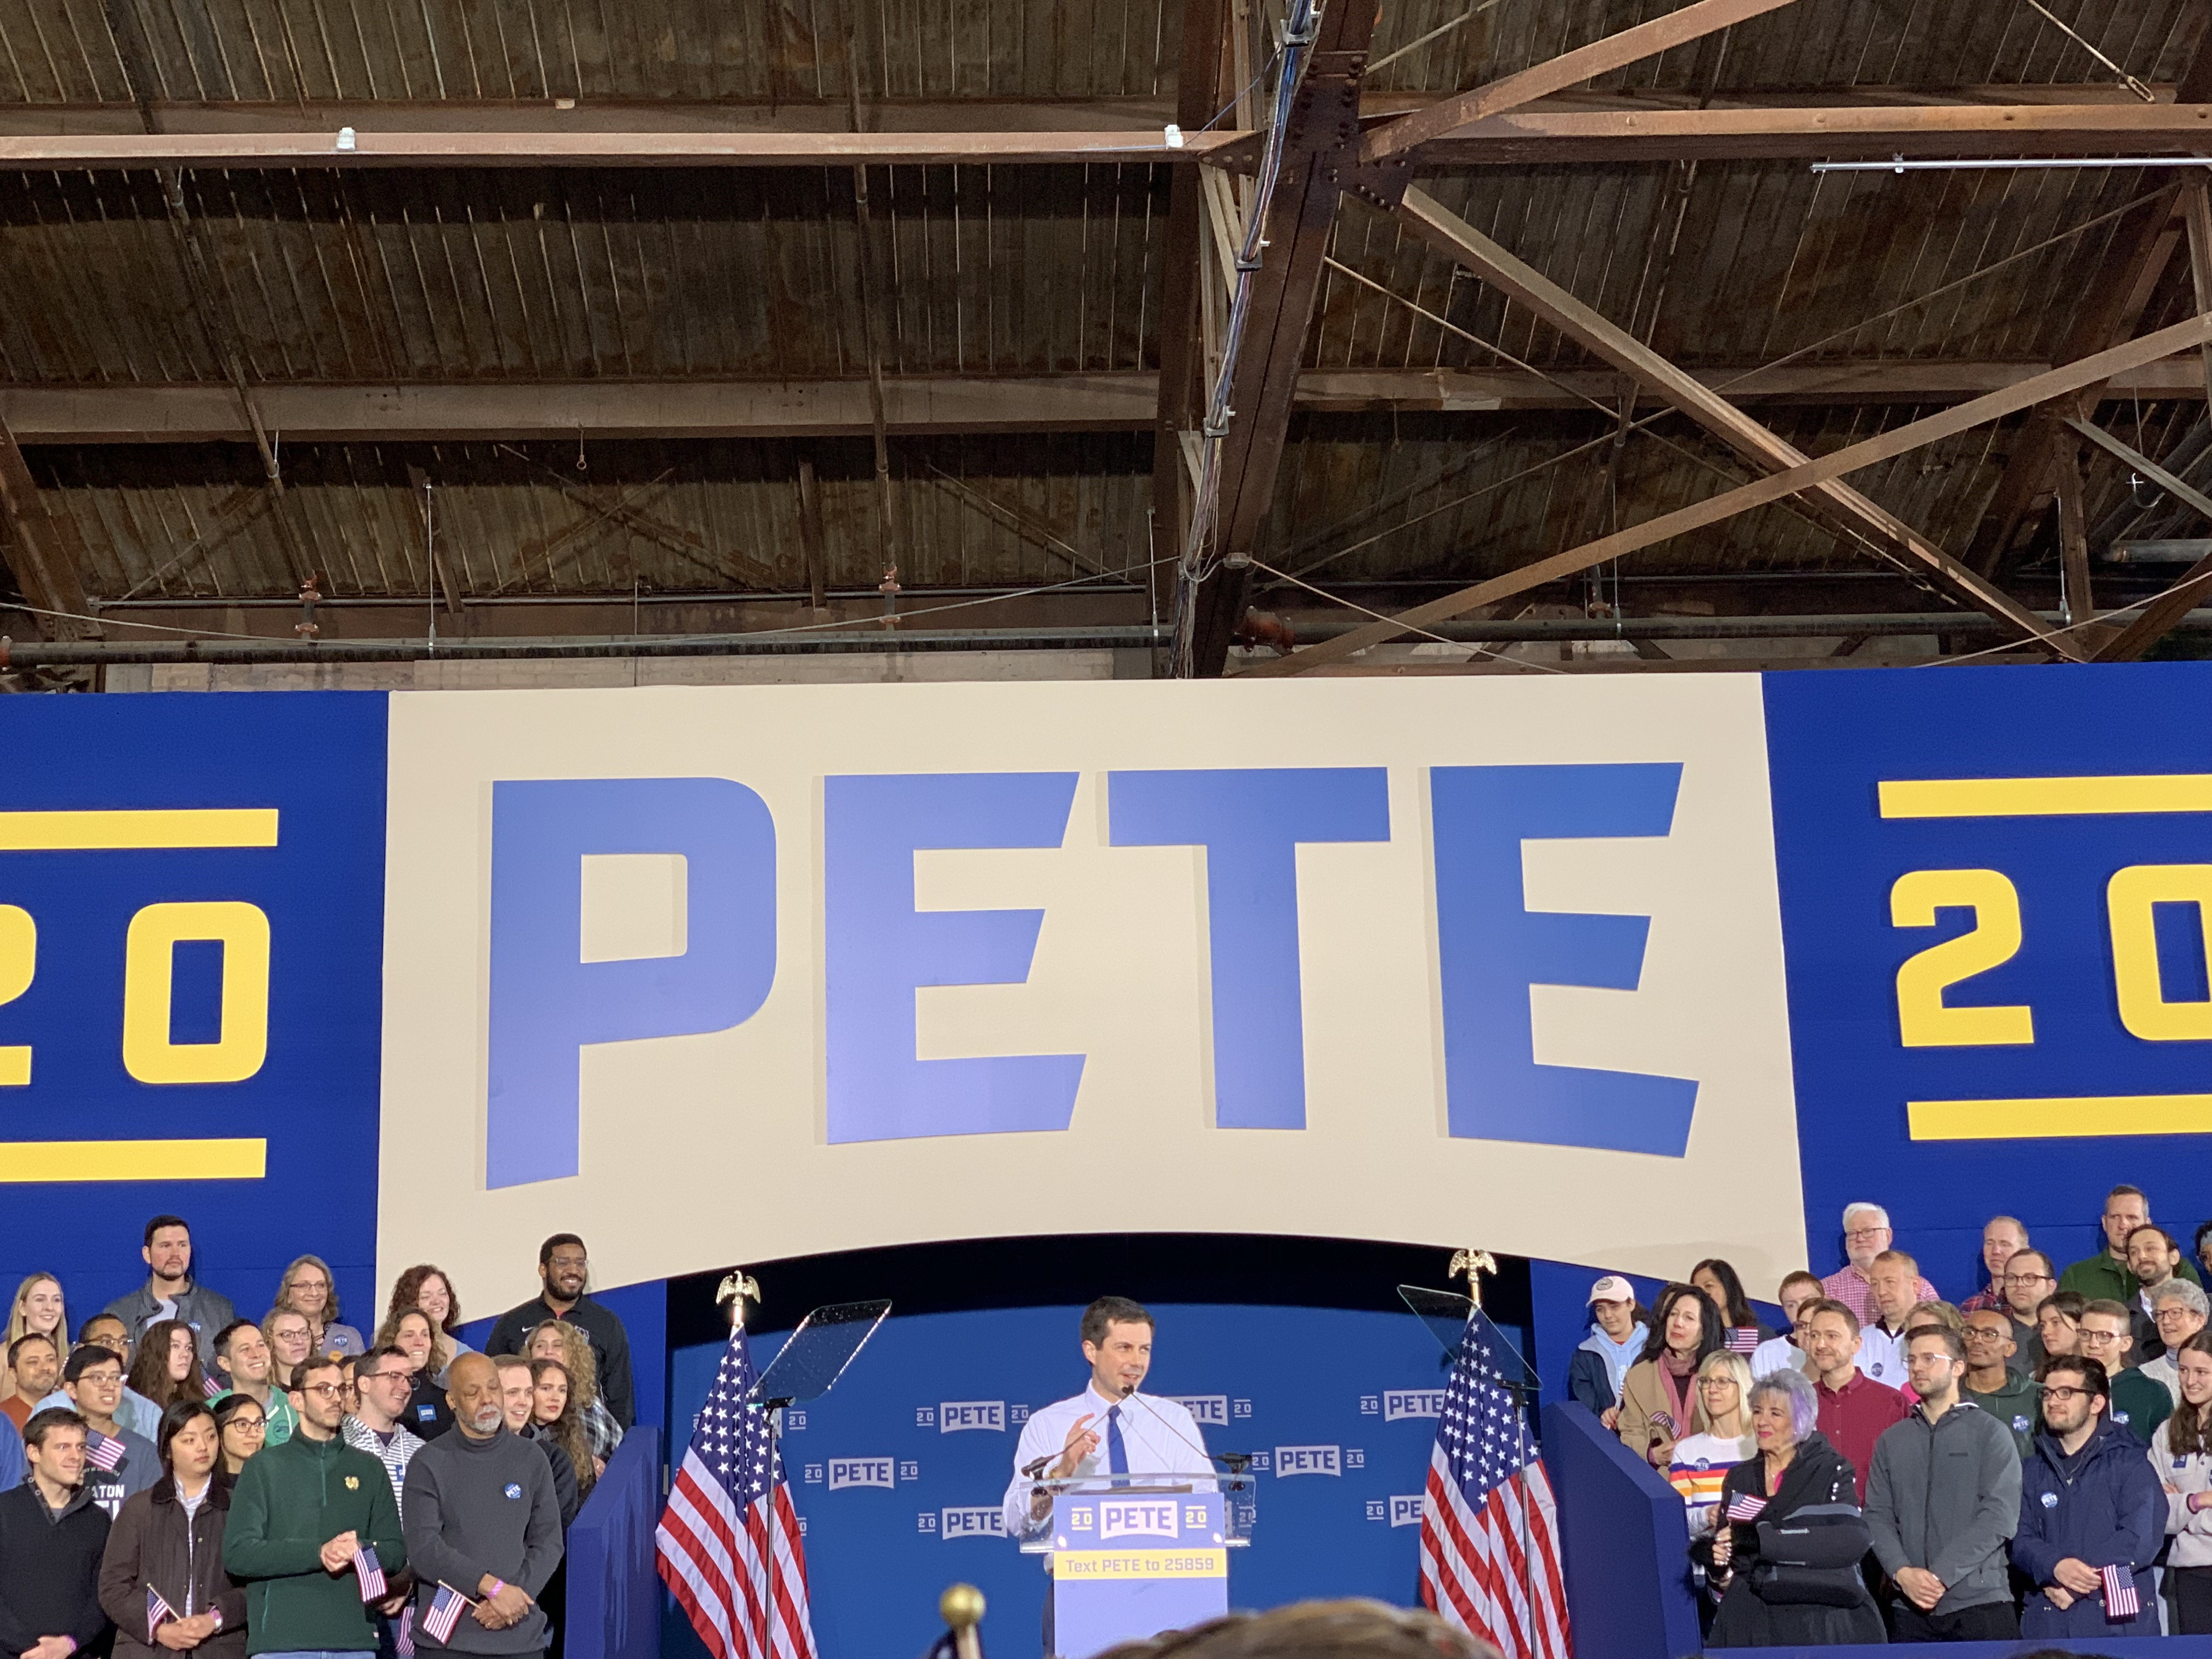 Mayor Pete in for 2020, in on climate action